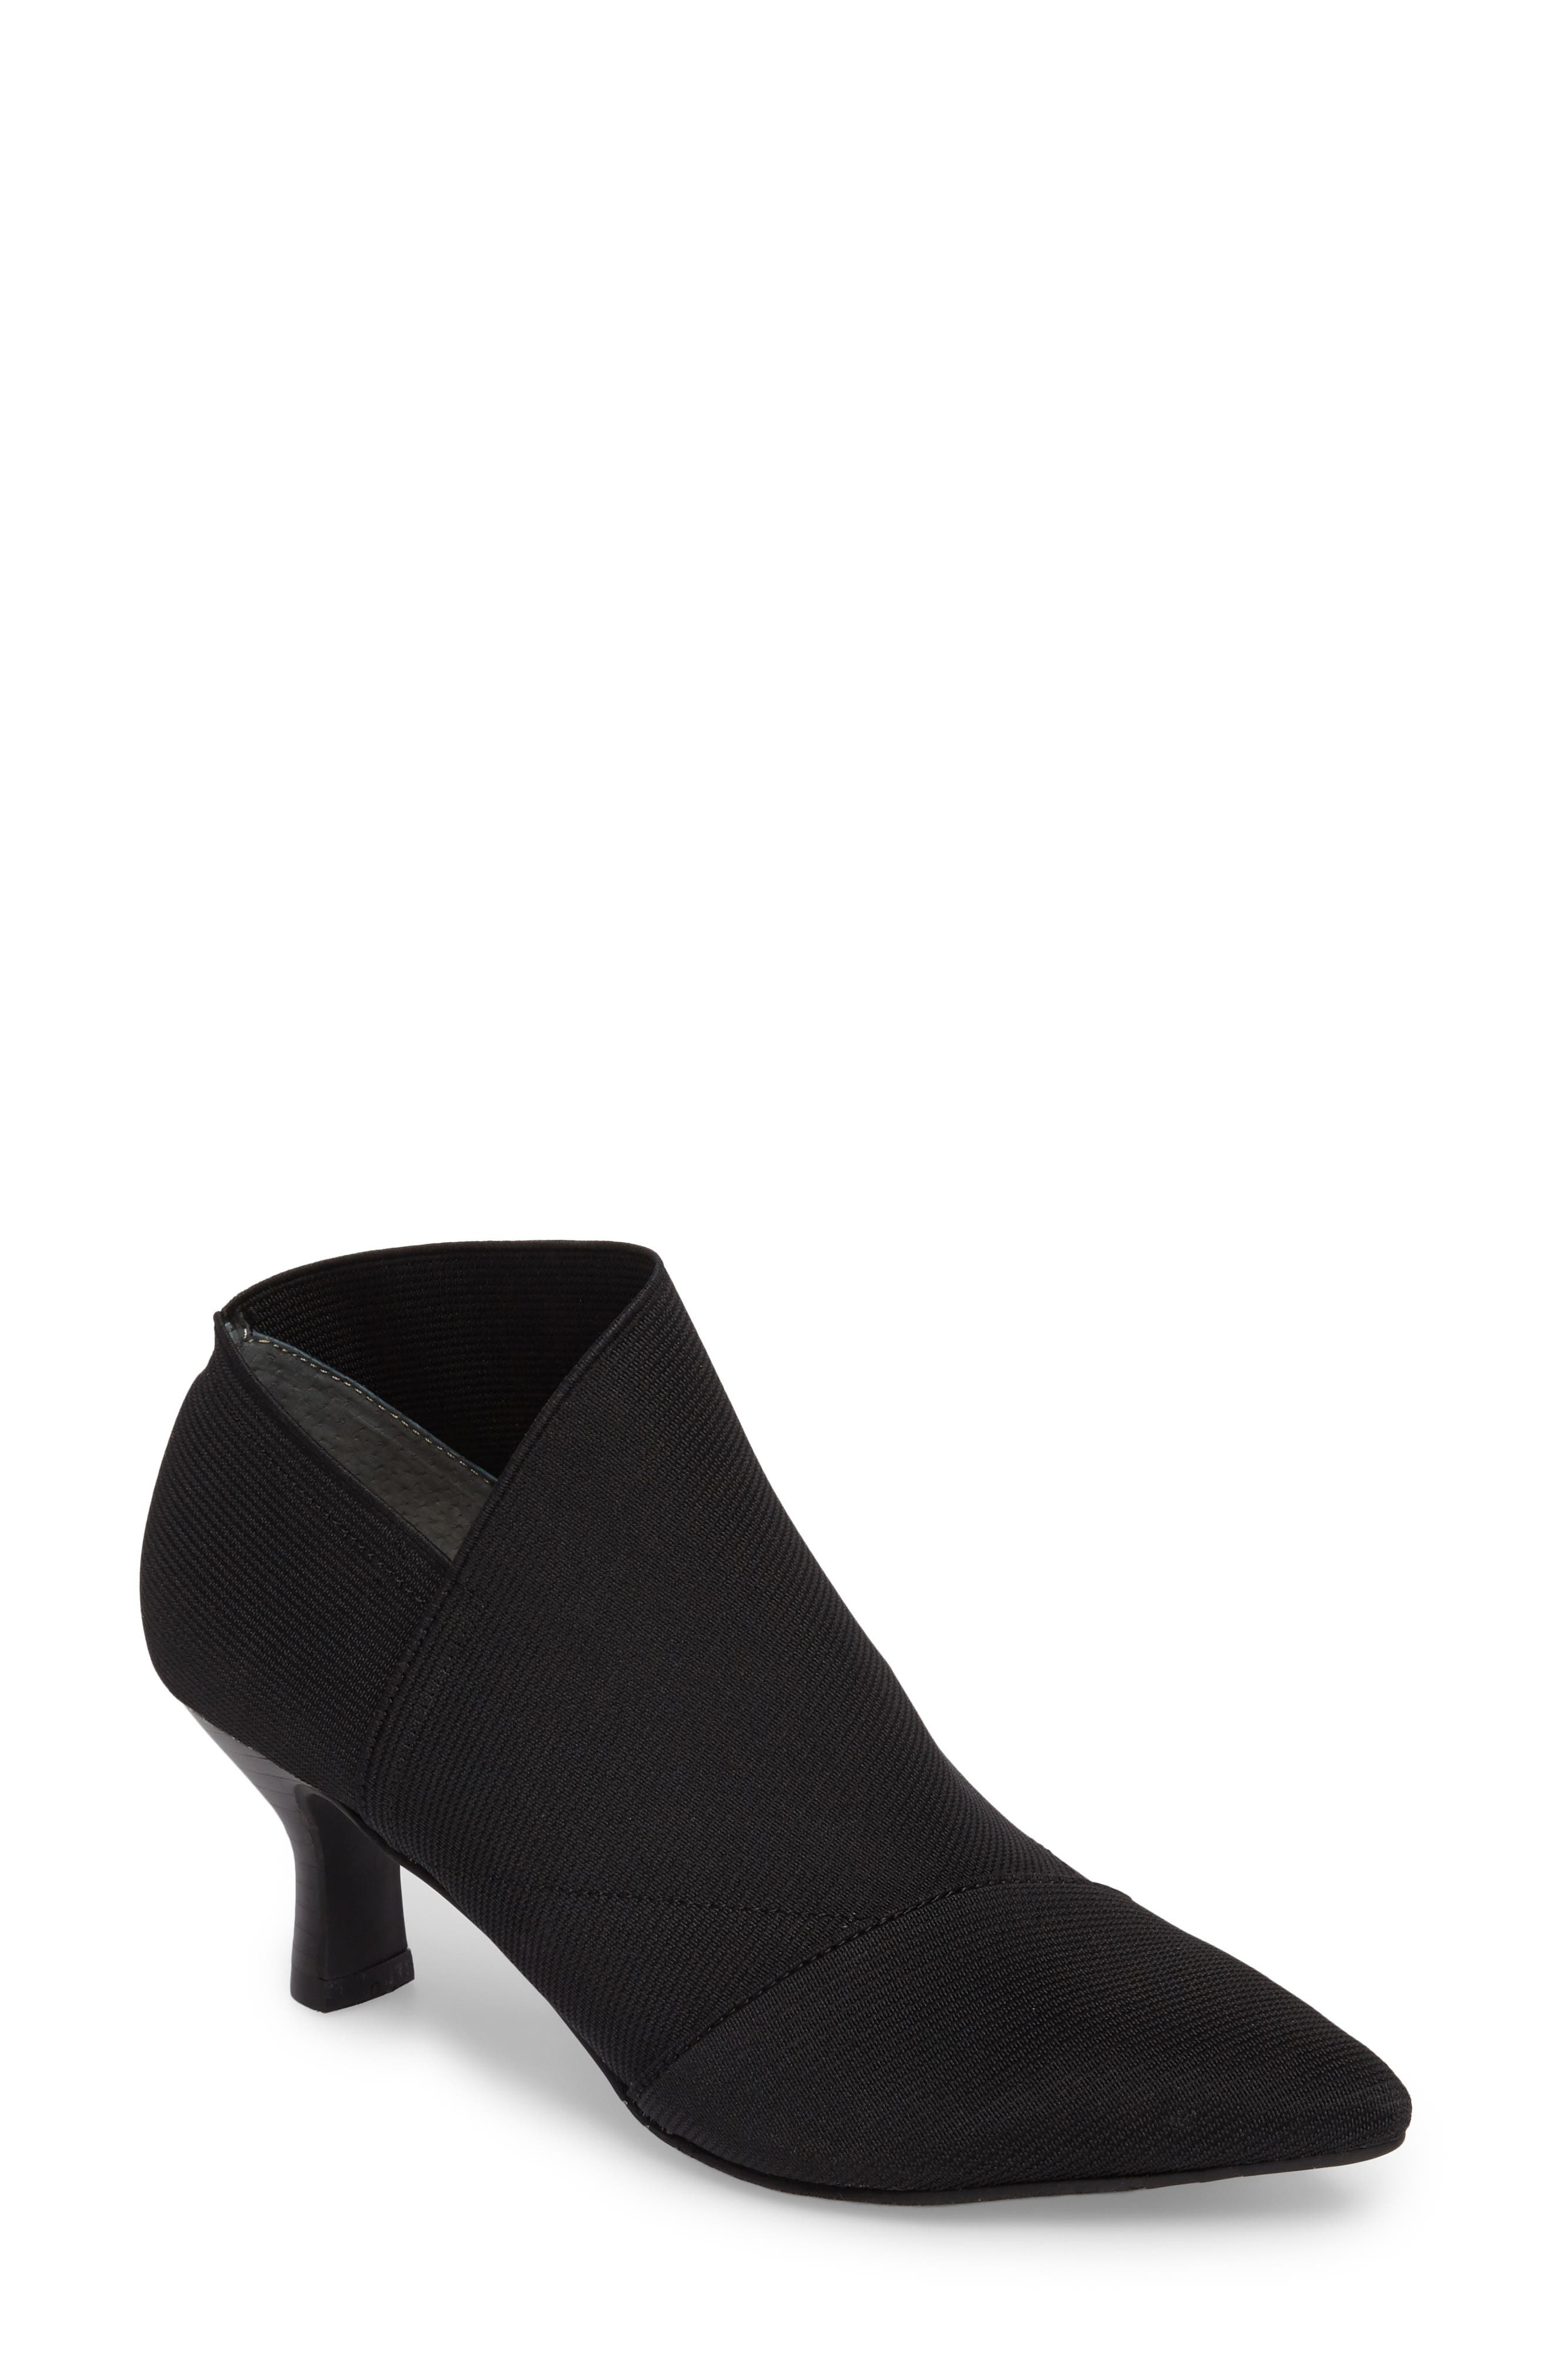 Hayes Pointy Toe Bootie,                         Main,                         color, Black Fabric